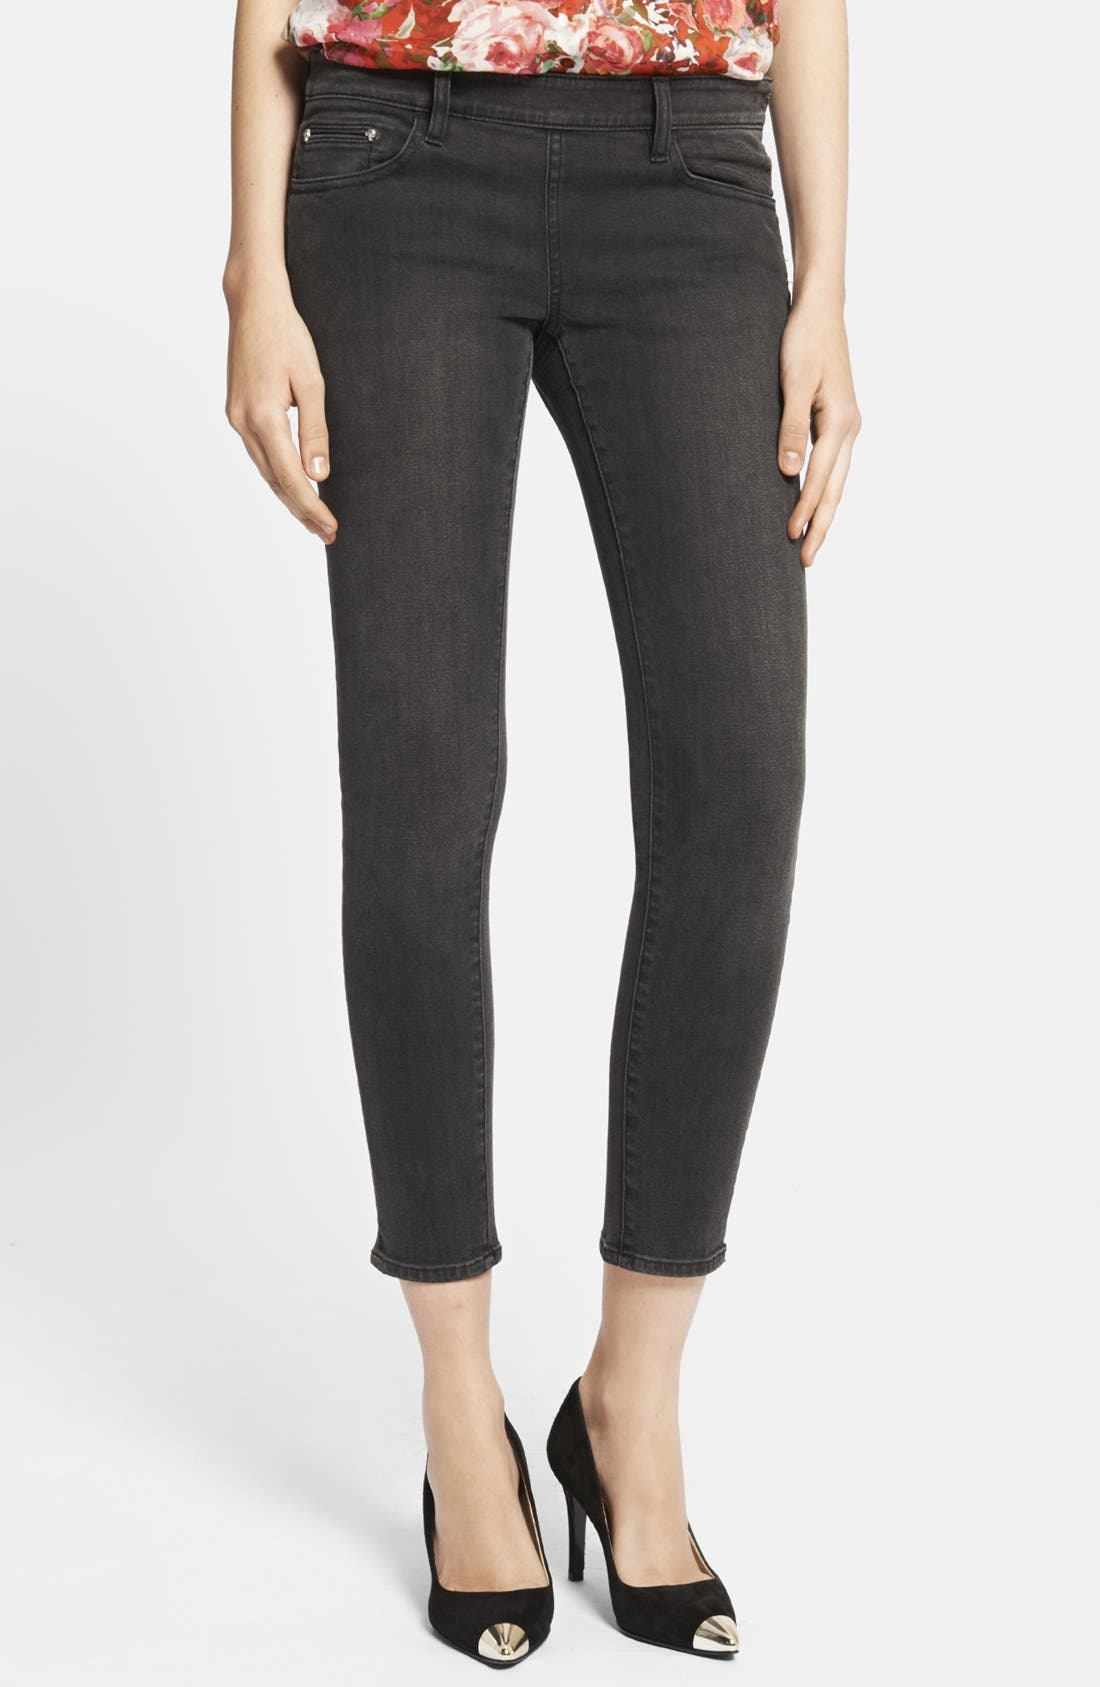 Alternate Image 1 Selected - The Kooples Side Zip Crop Skinny Jeans